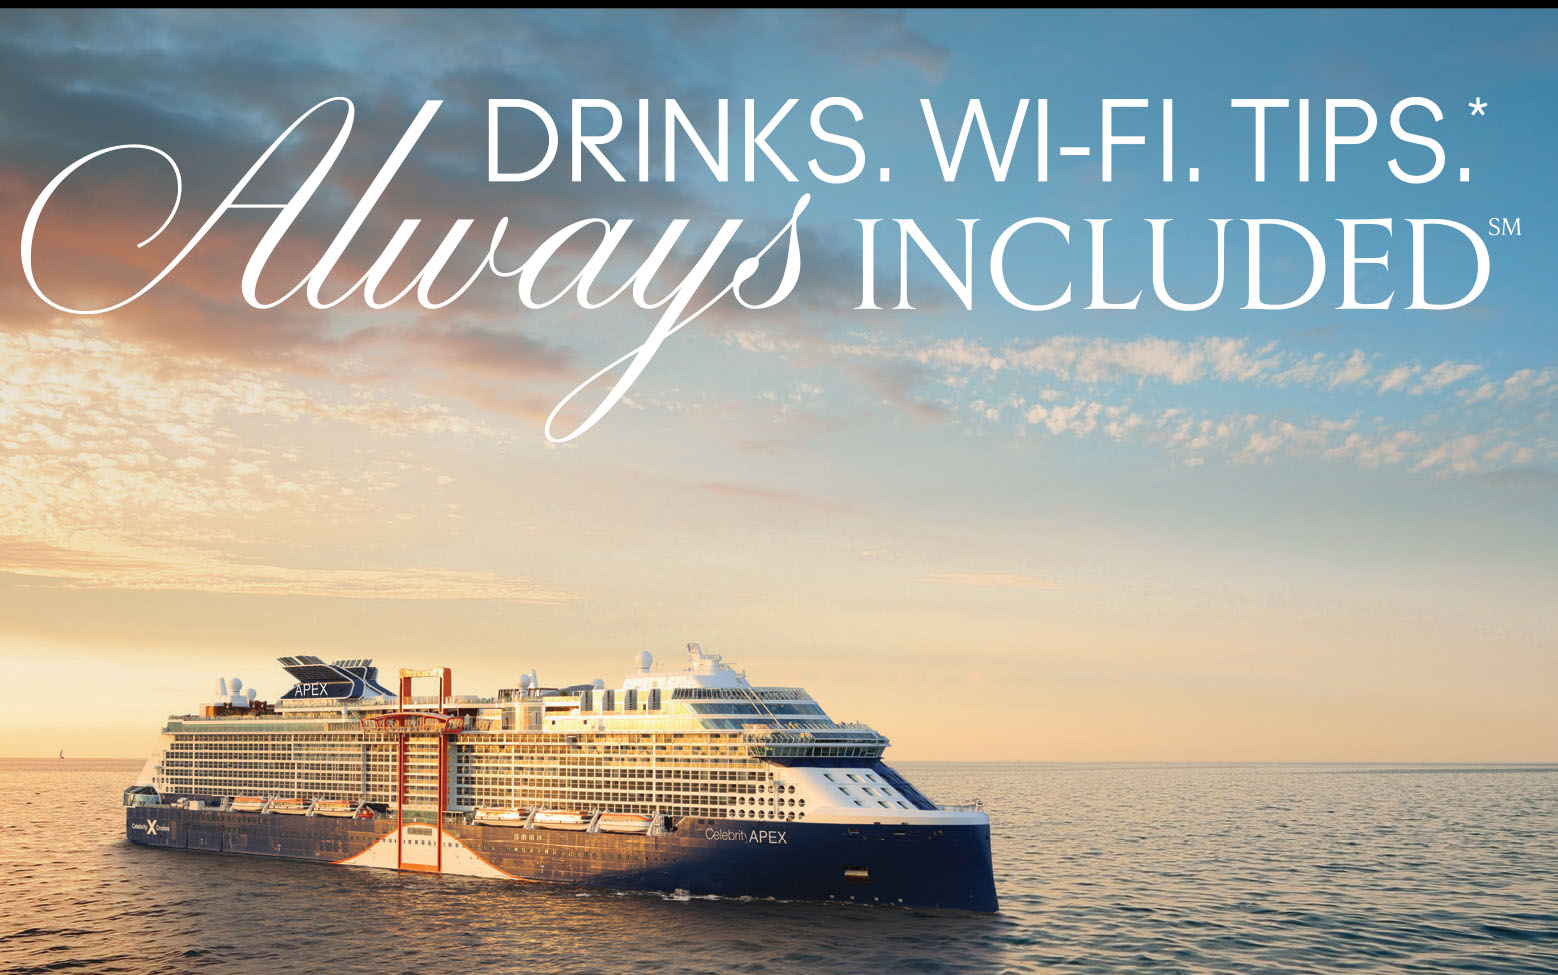 Celebrity - Drinks. Wi-FI.Tips.* Always Included